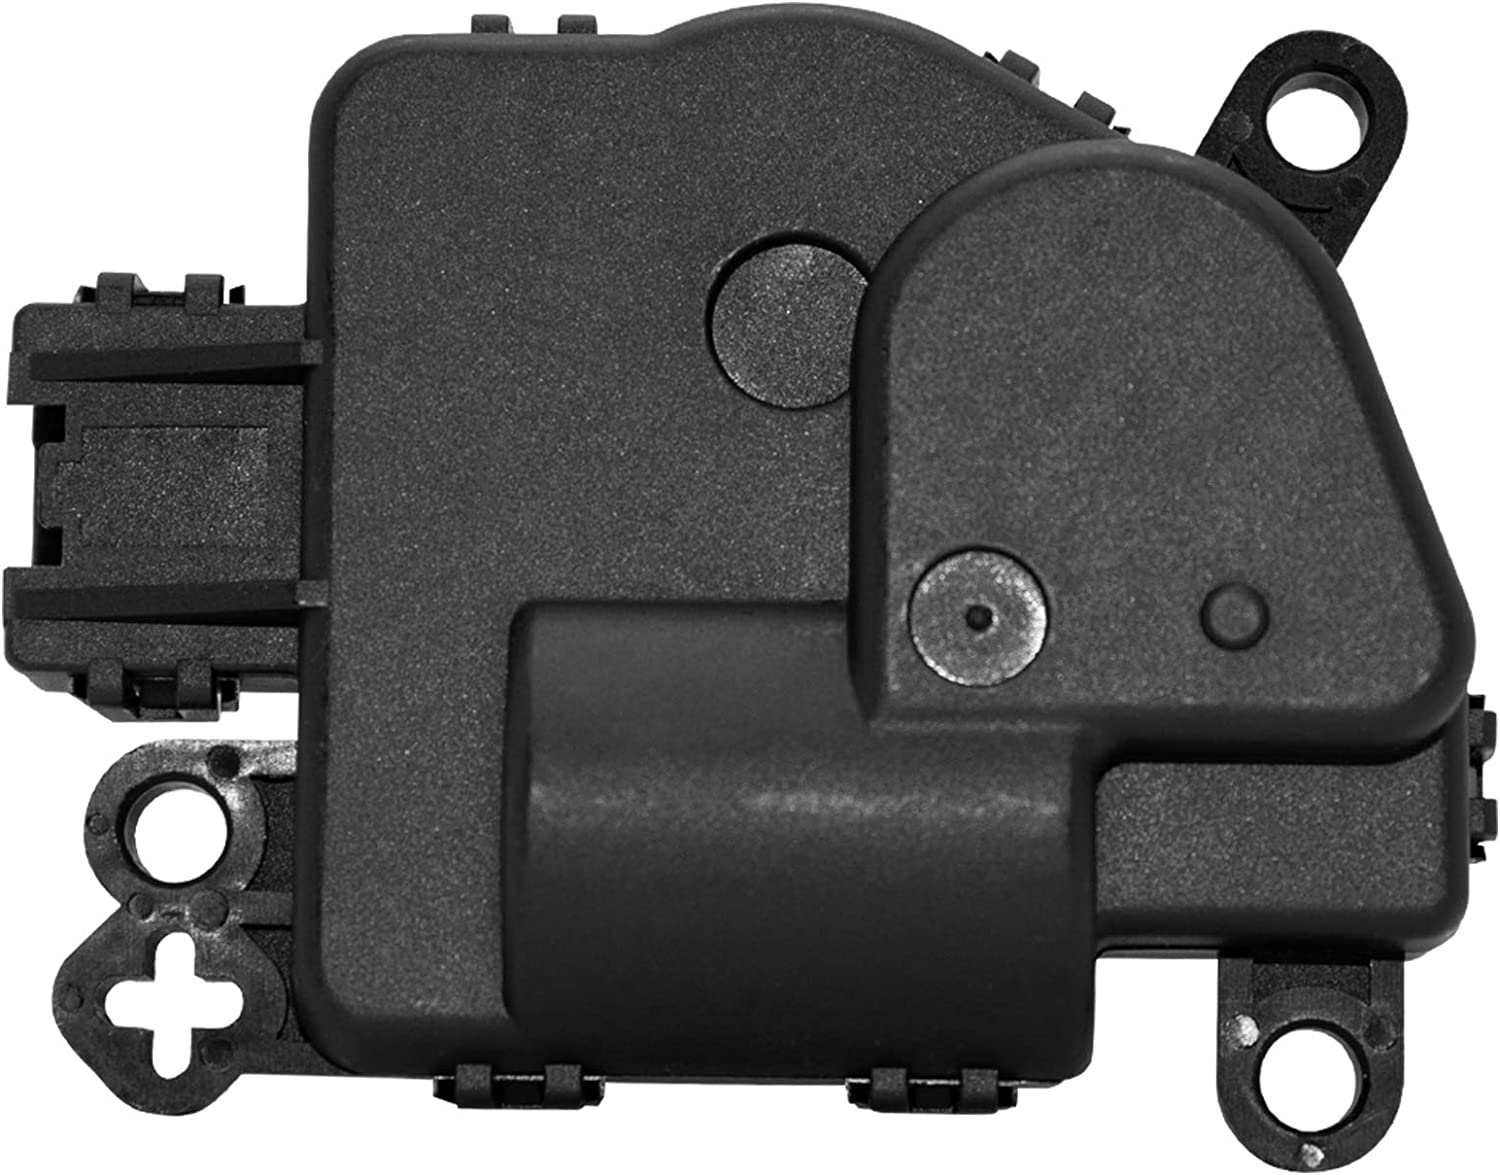 604-029 HVAC Blend Door Actuator Fits for Chry-sler Cirrus Blend Door Actuator Car Accessories Replaces 604029 68018109AA by Sikawai